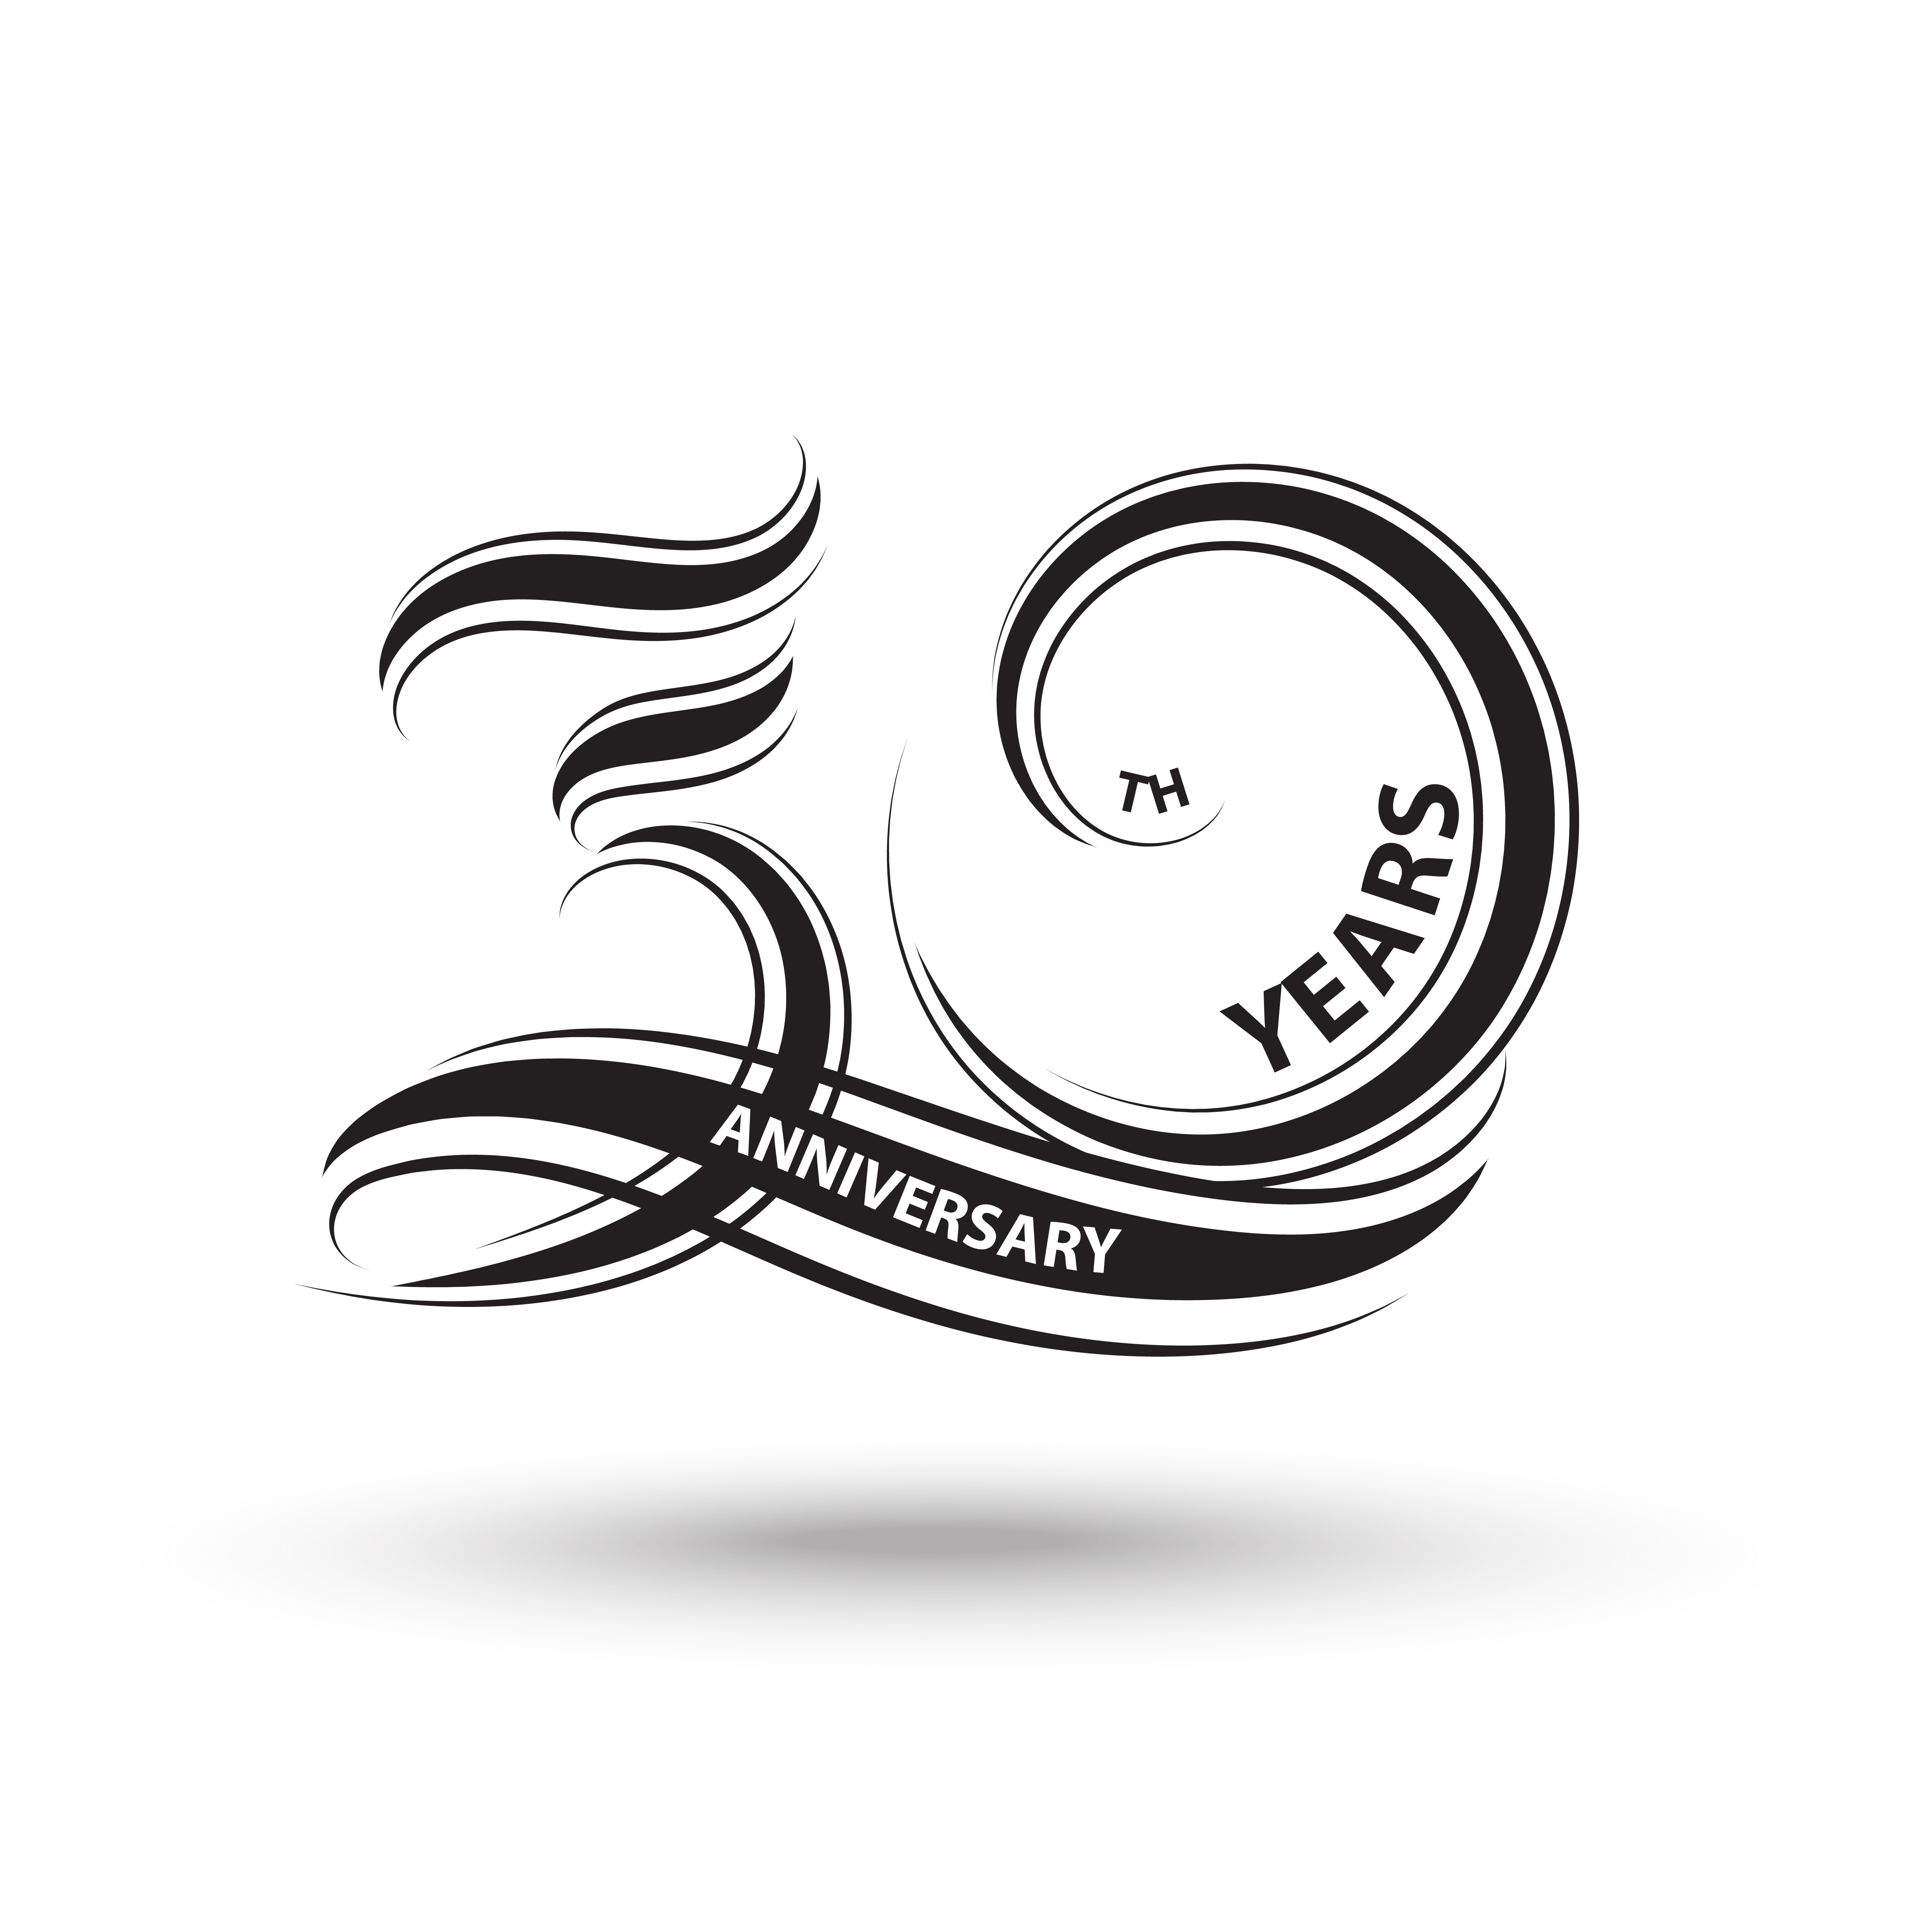 30 Year Anniversary Symbol: 30th Anniversary Sign And Logo For Celebration Symbol